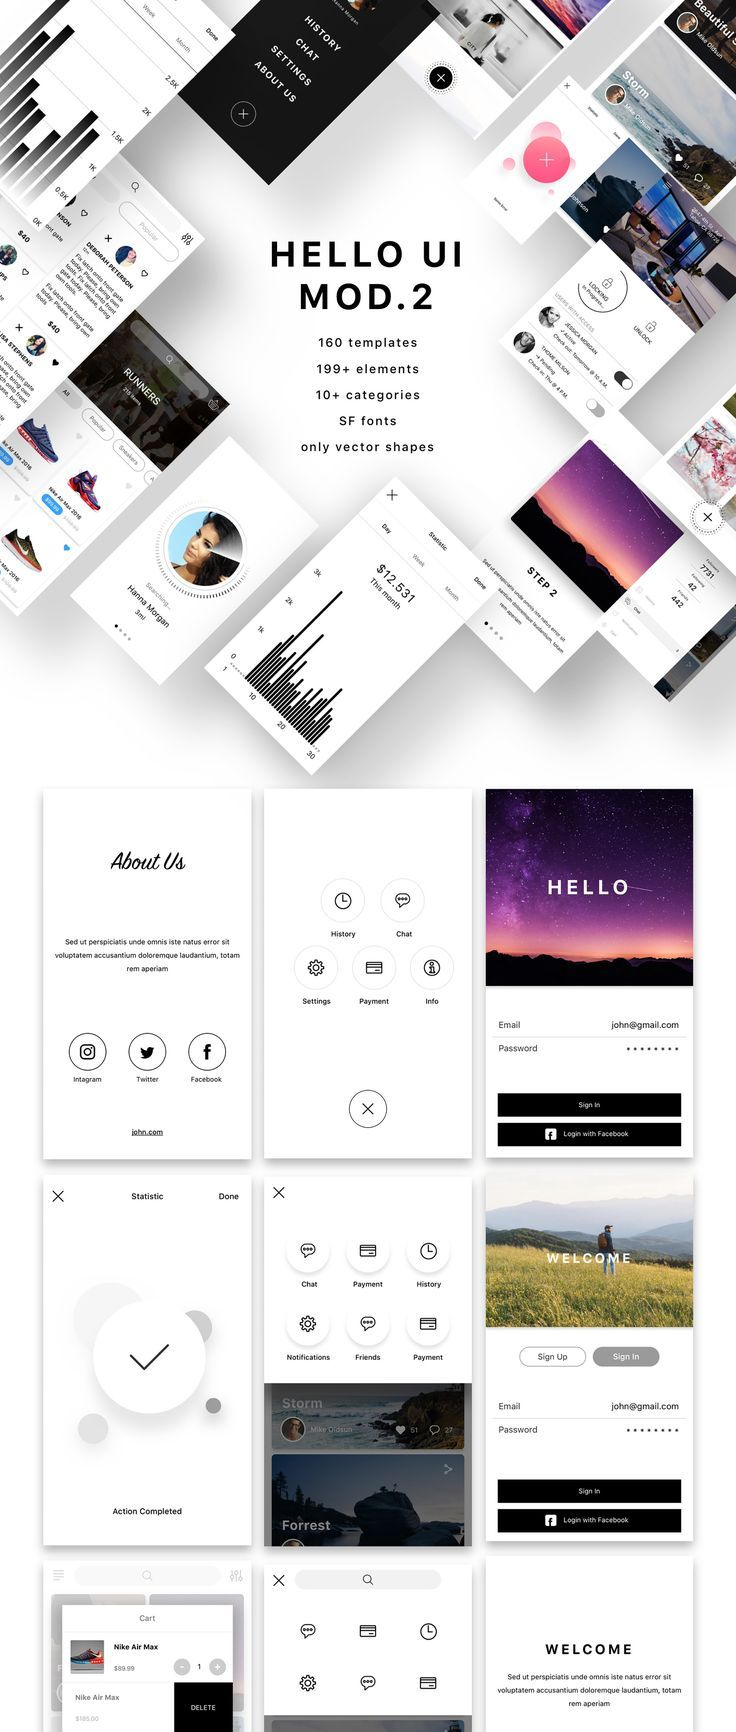 Heeeeey, Hello UI Kit Mod. 2! This mobile UI Kit kit includes more than 160…. If you like UX, design, or design thinking, check out theuxblog.c